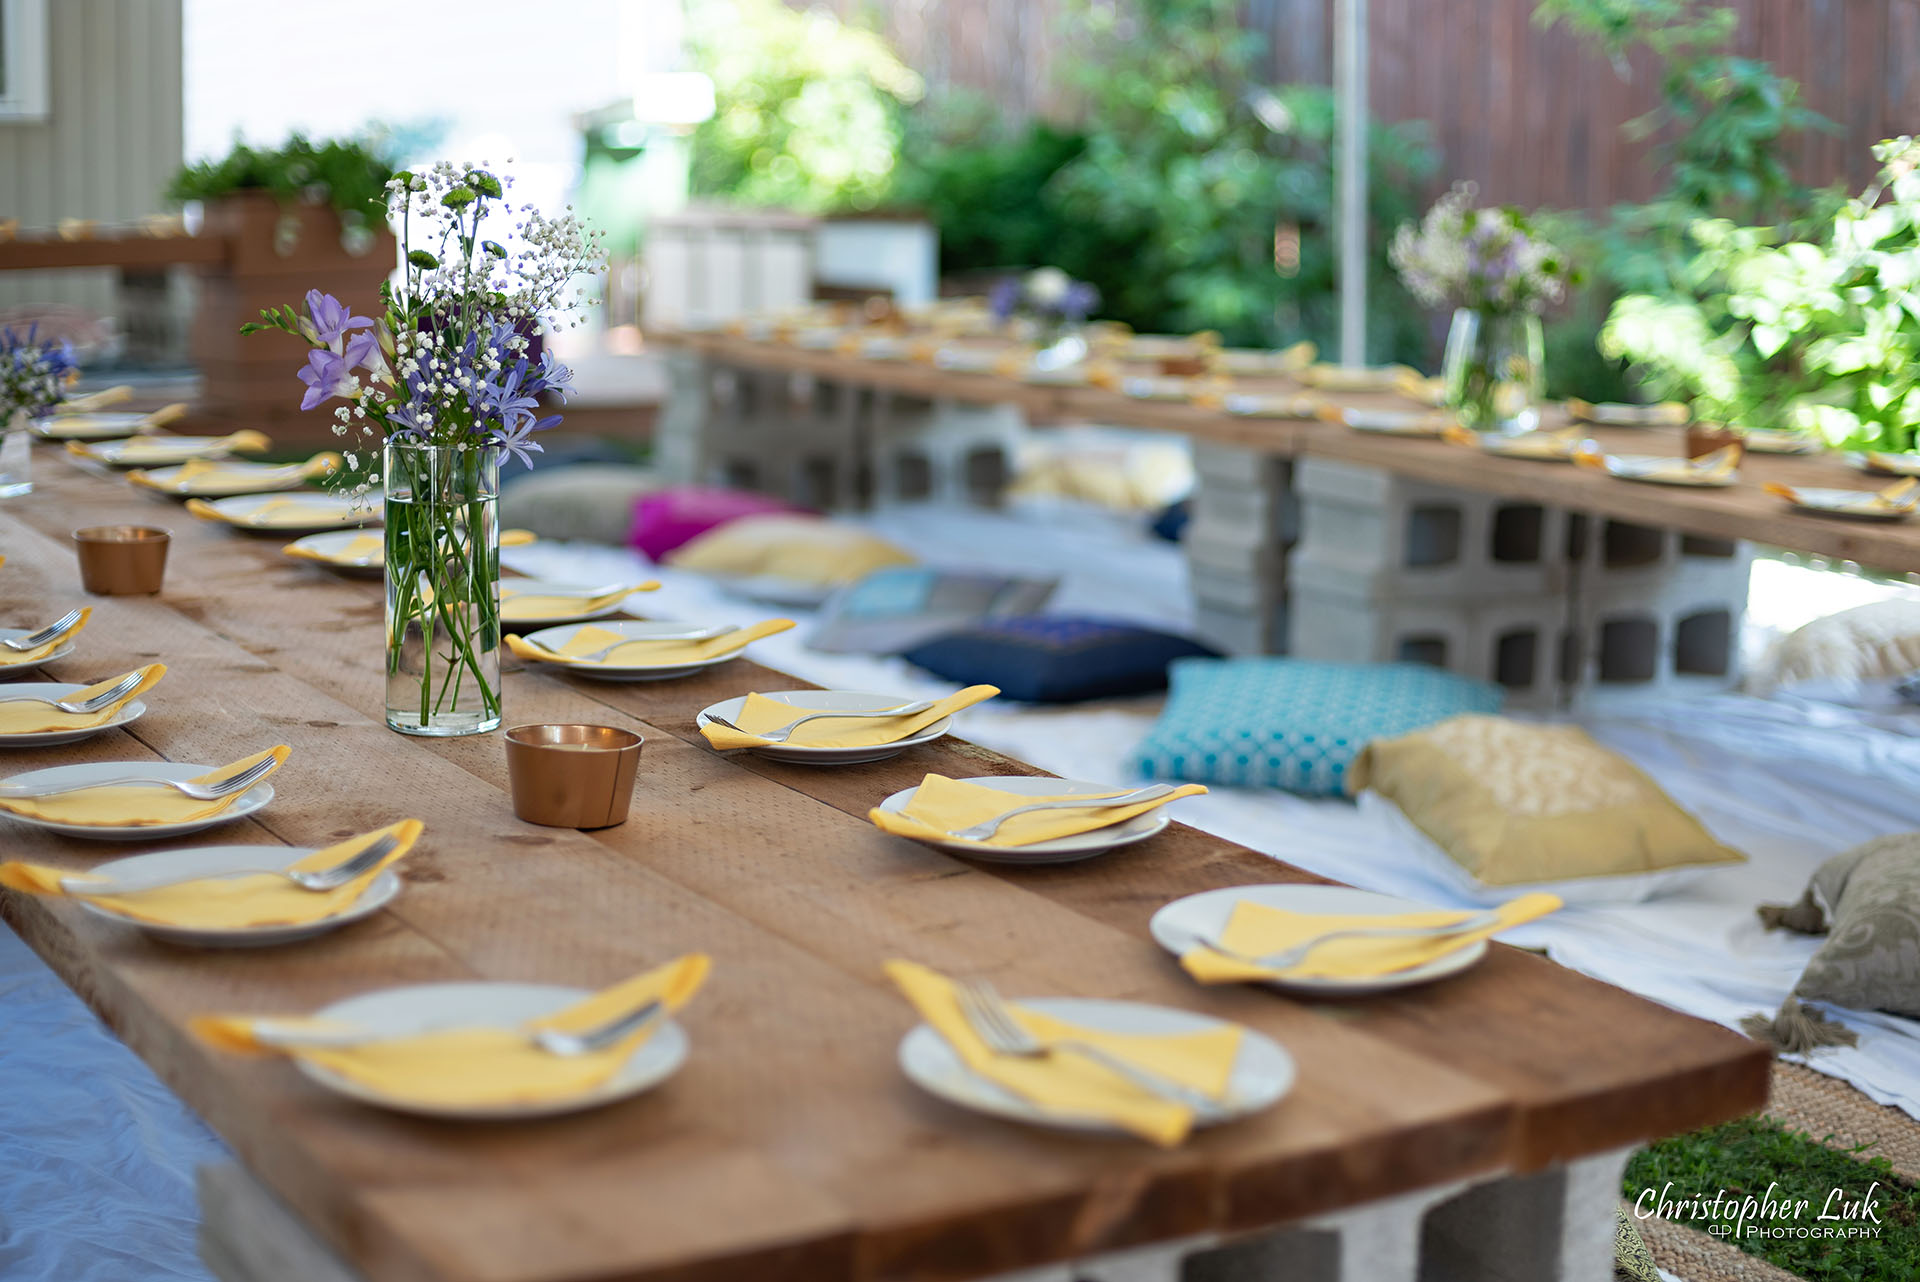 Christopher Luk Toronto Wedding Engagement Event Photographer Bohemian Boho Chic Backyard Tent Wedding Wood Table Planks Folded Napkins Plates Floral Centrepieces Coloured Pillows Floor Mats Cement Cinder Block Stand Flowers Angle